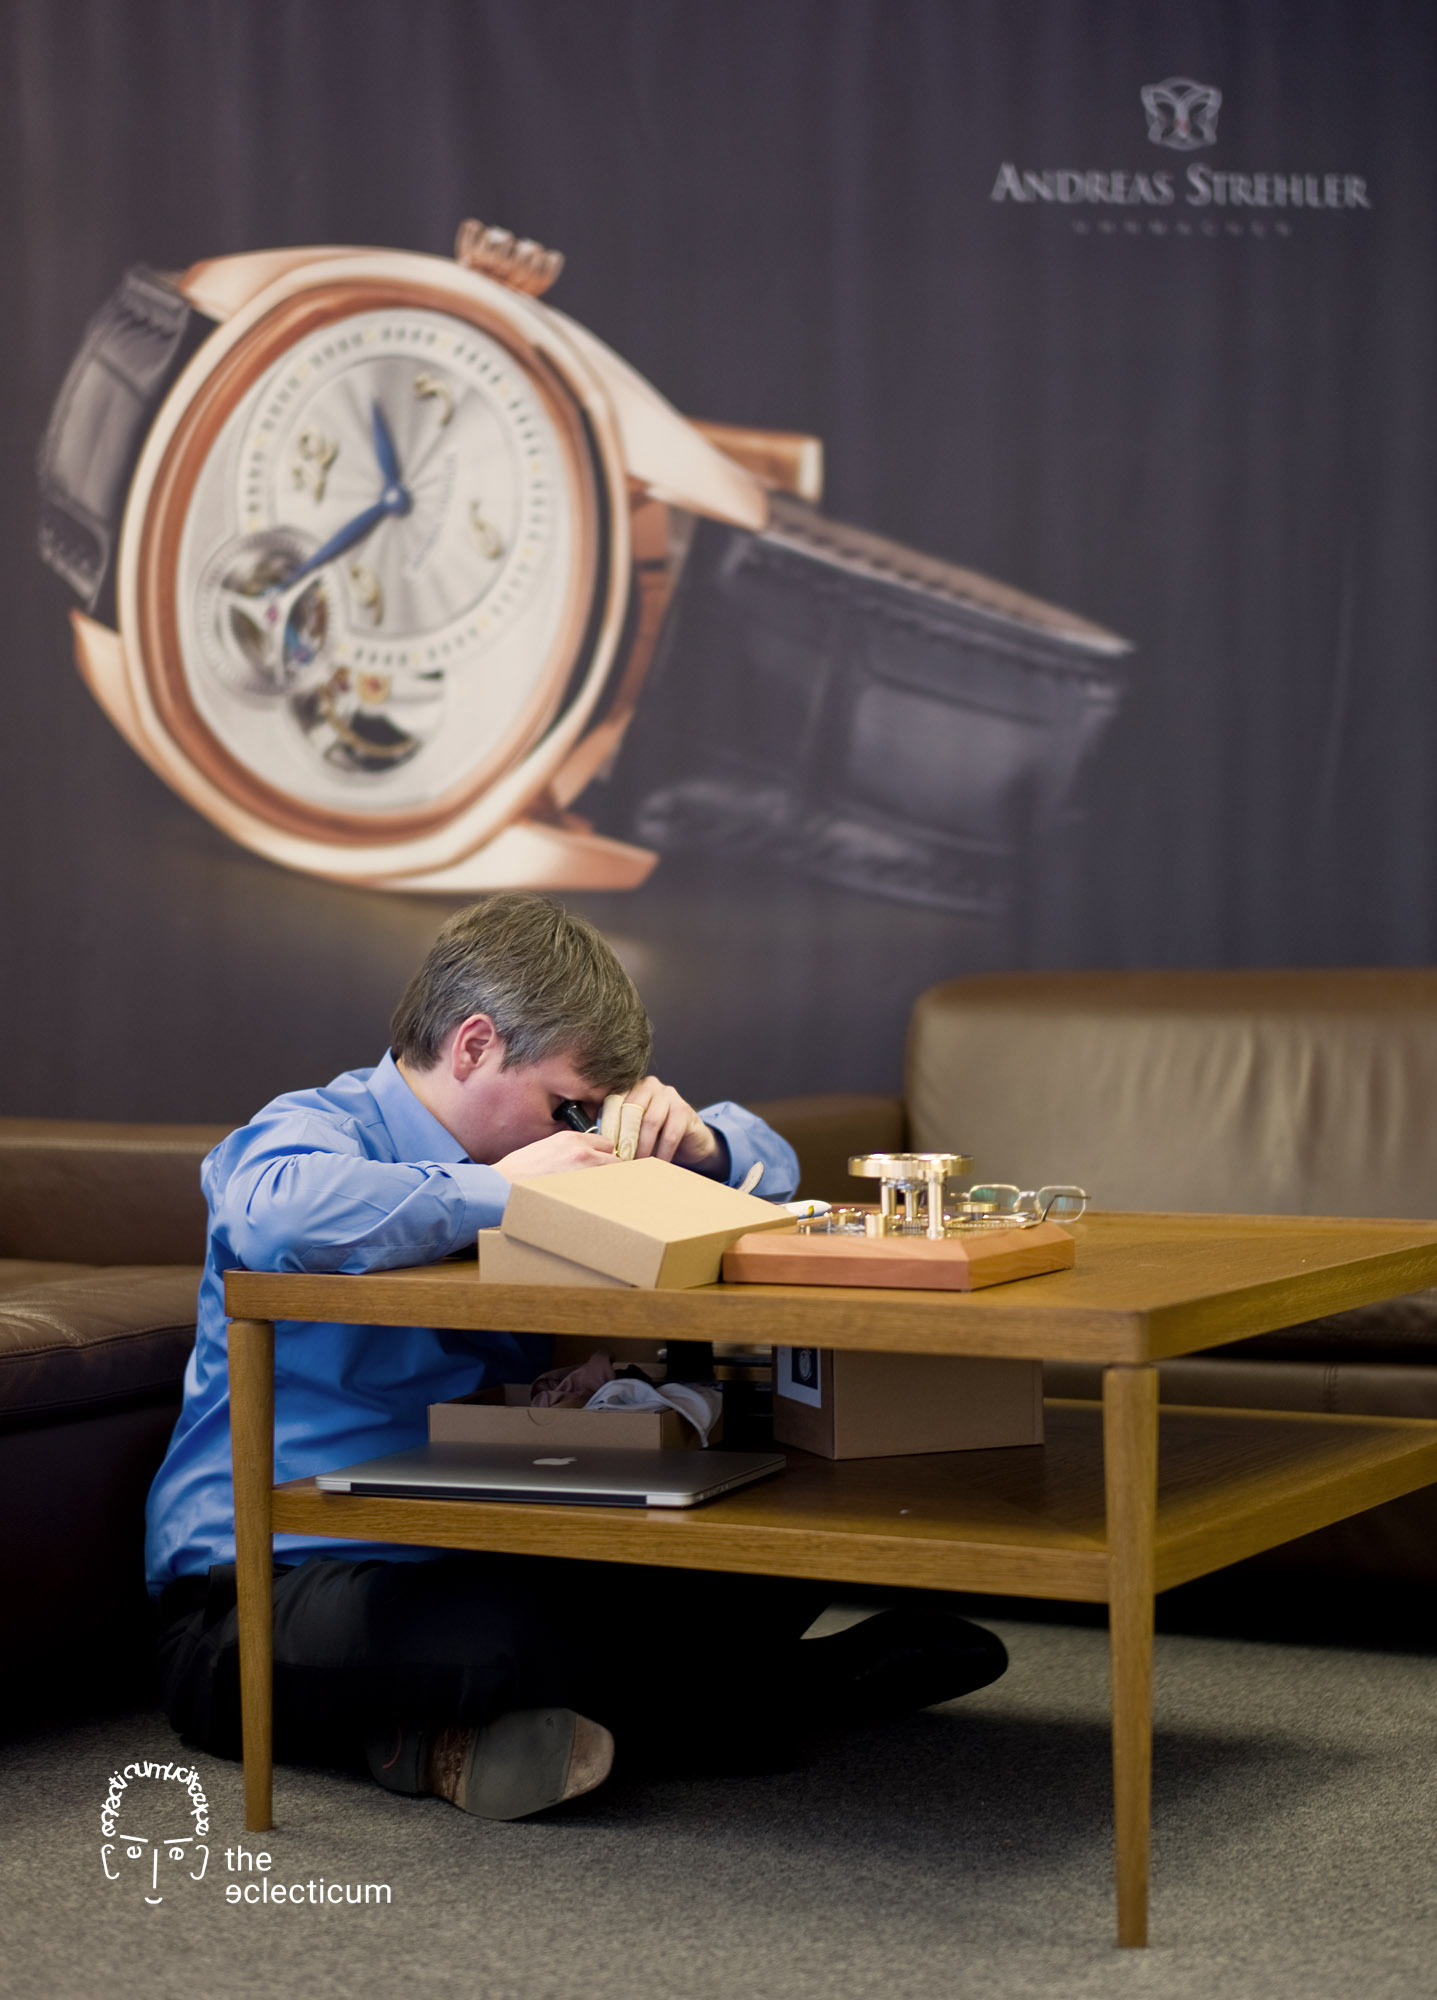 Andreas Strehler watchmaker AHCI